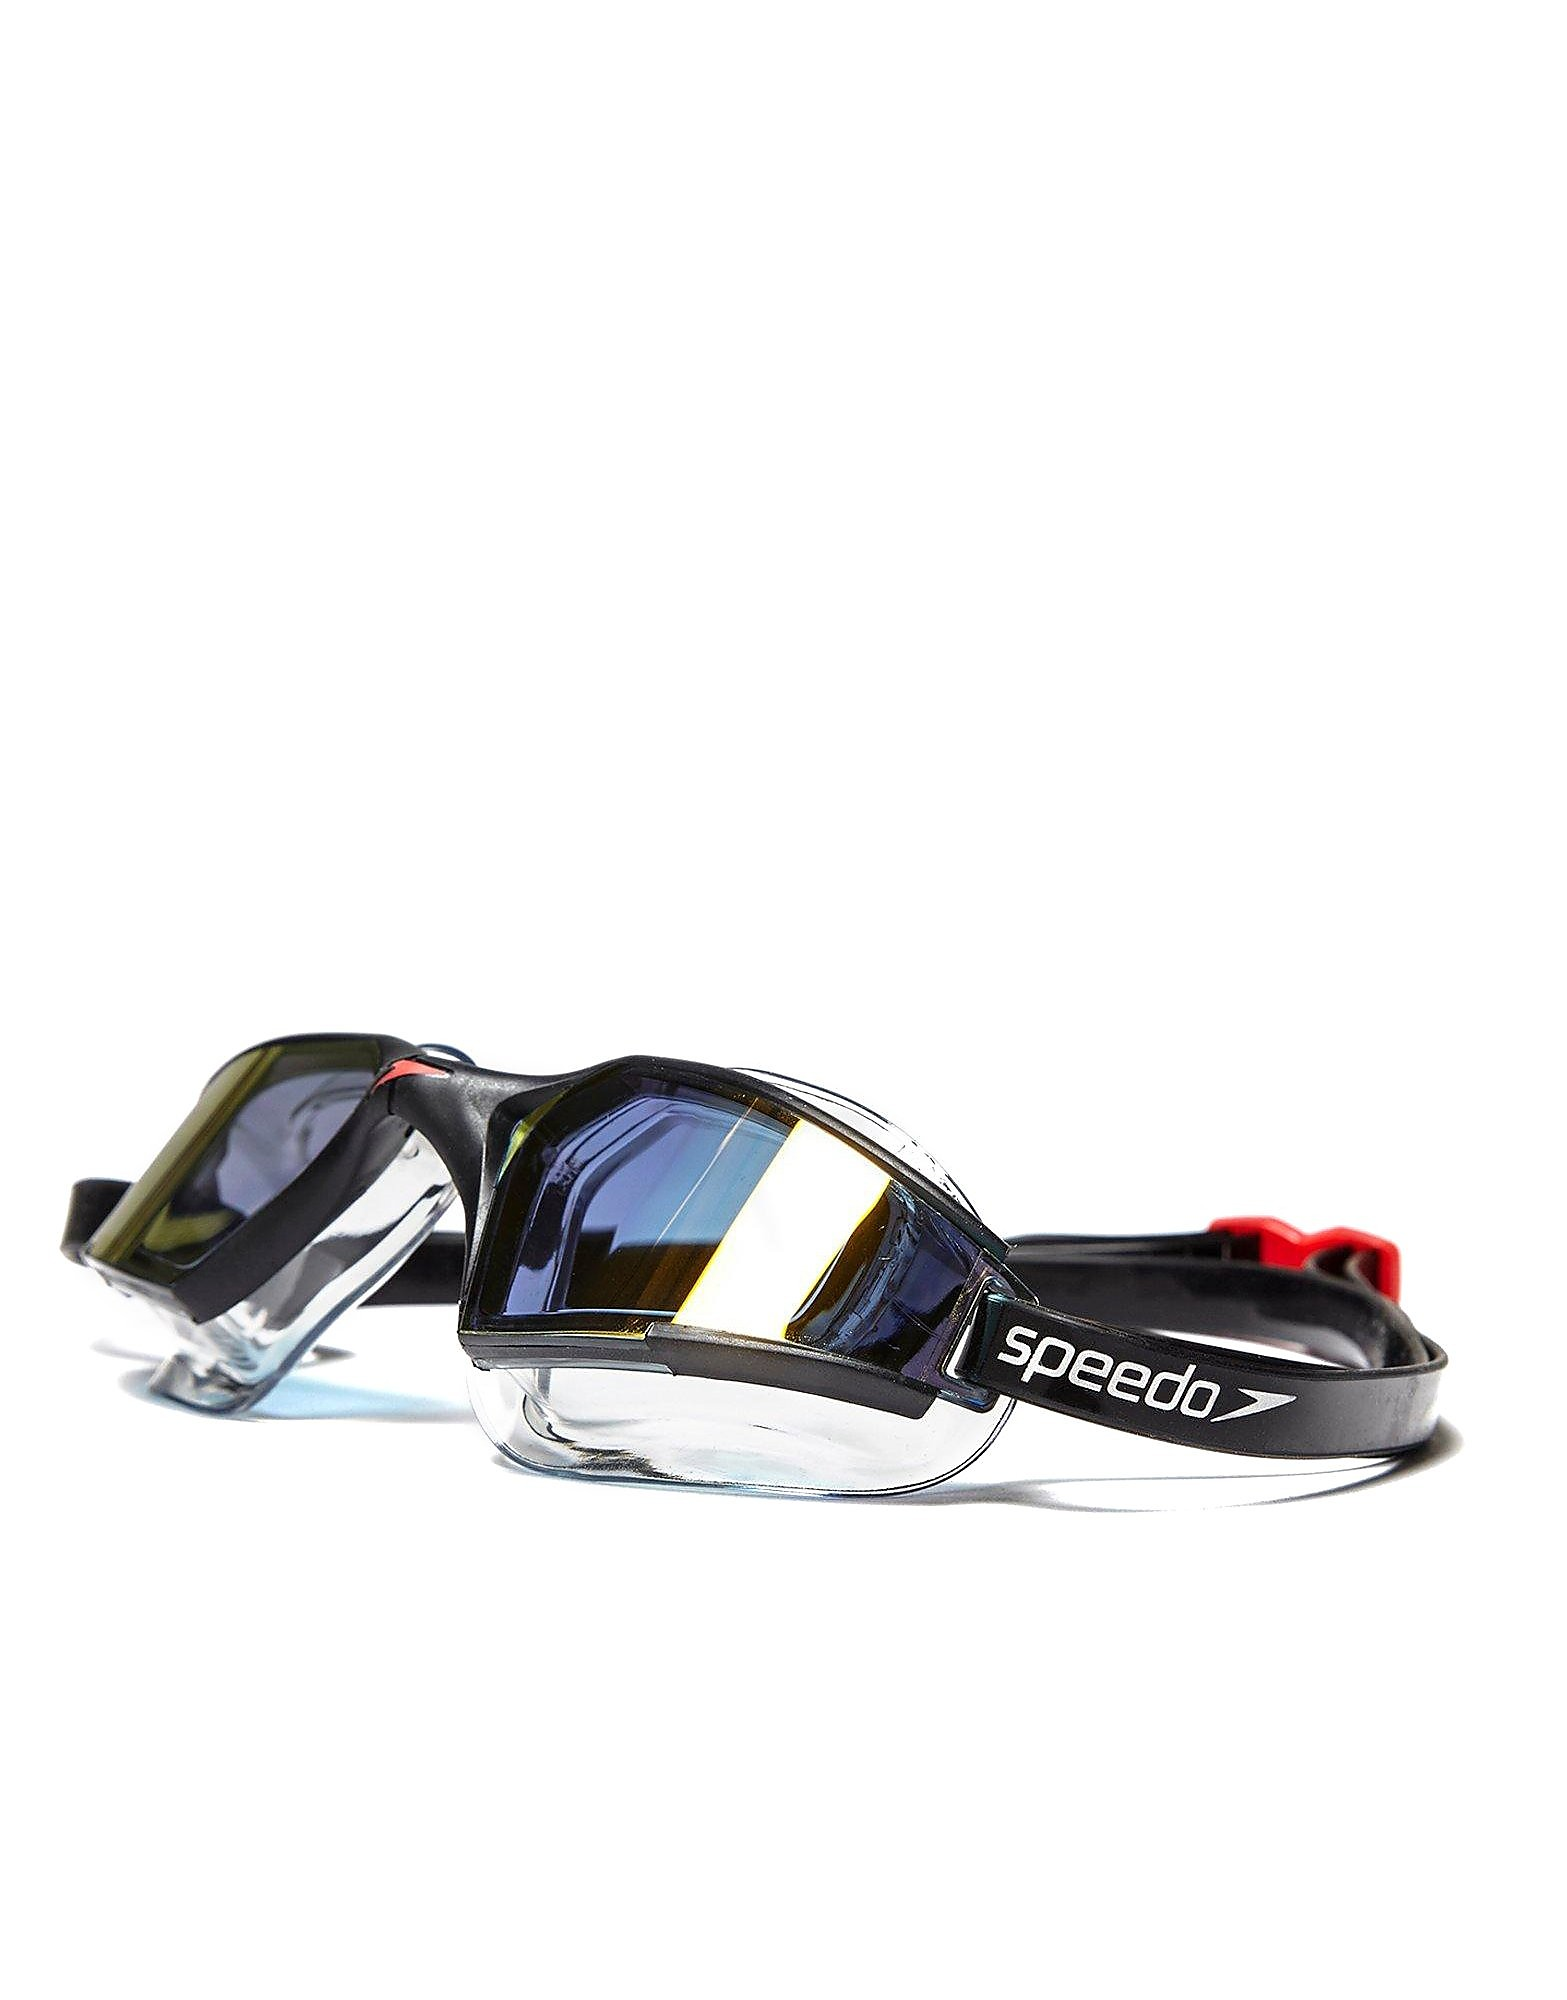 Speedo Aquapulse Max Mirror-duikbril - Zwart - Heren